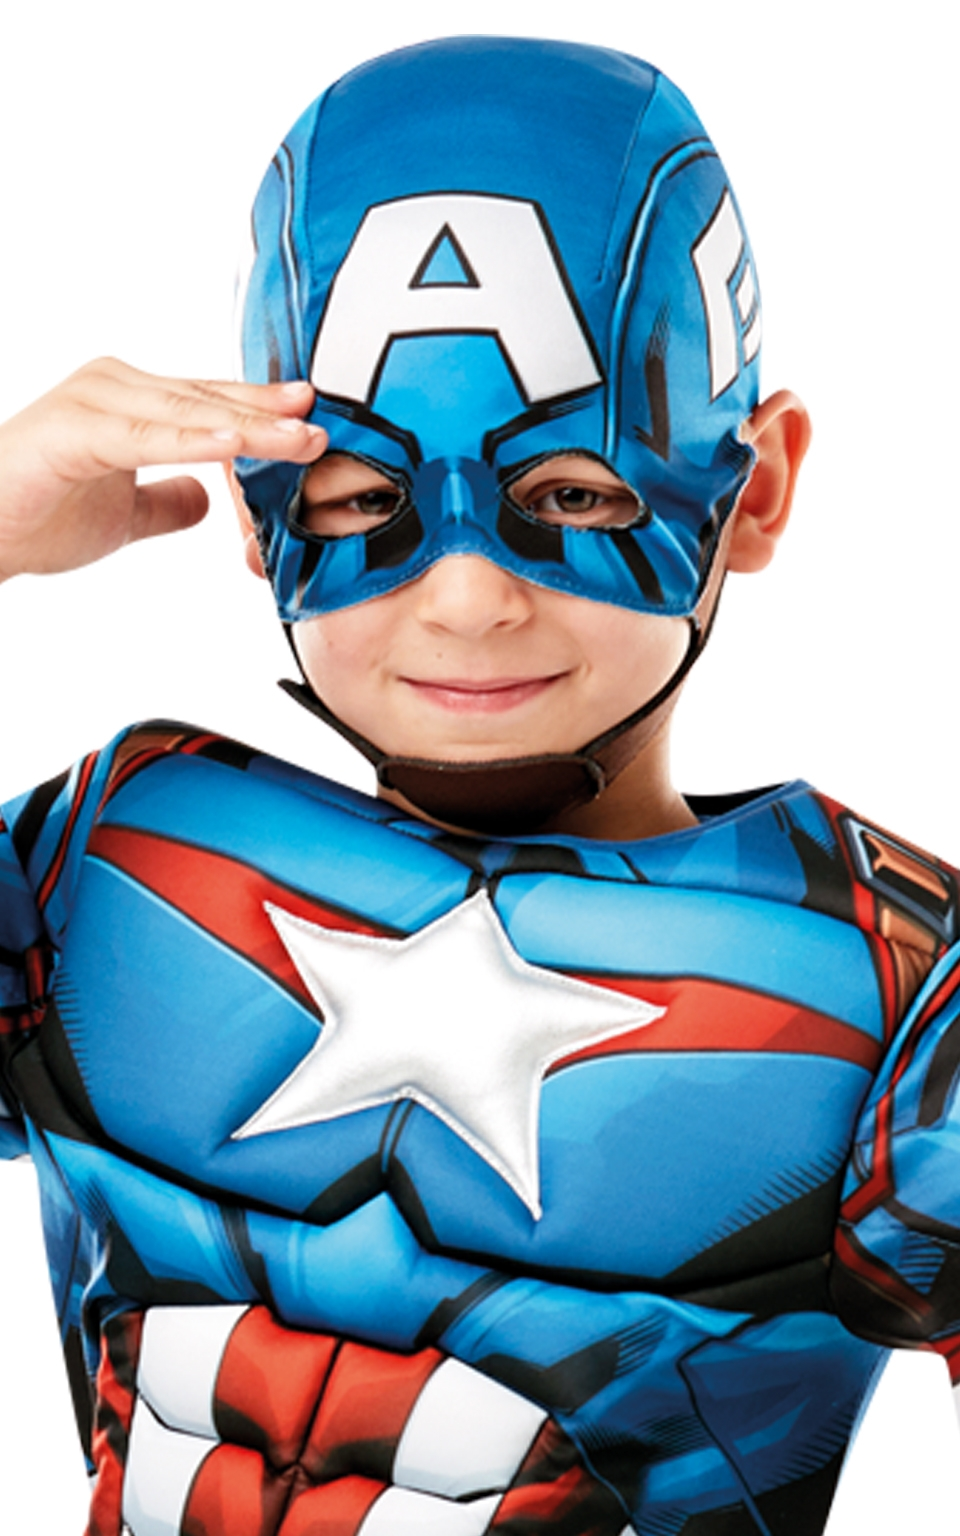 Kids Superhero Costumes